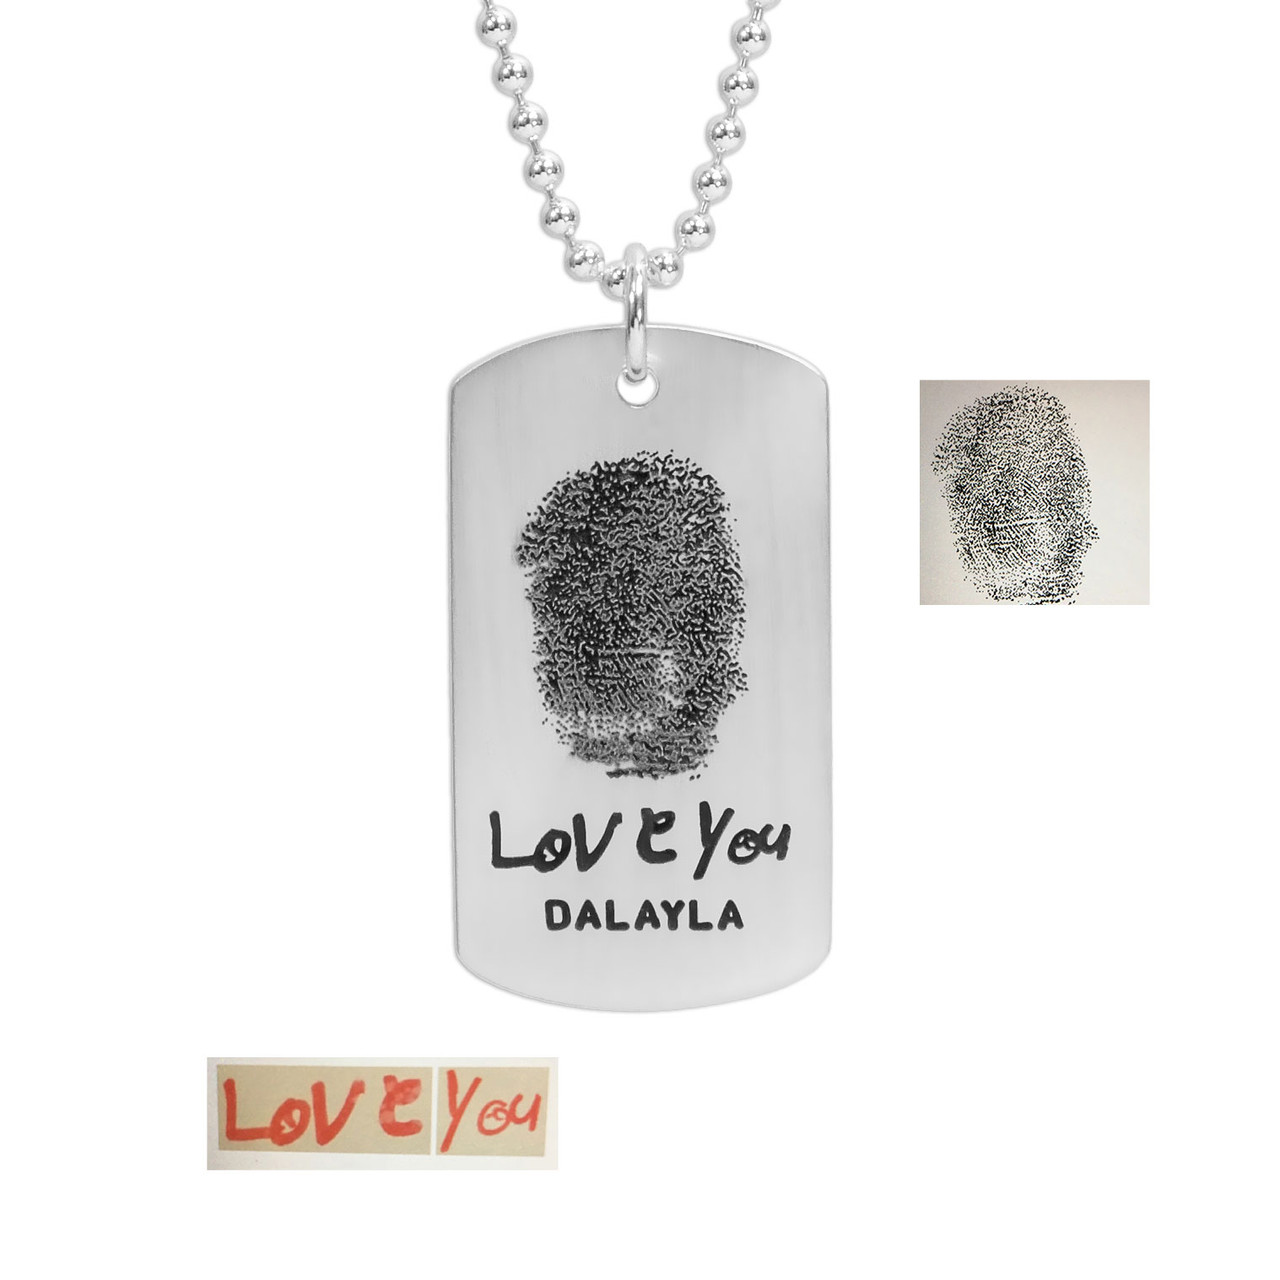 Name and fingerprint on silver military tag necklace, with the original handwriting & fingerprint used to create it